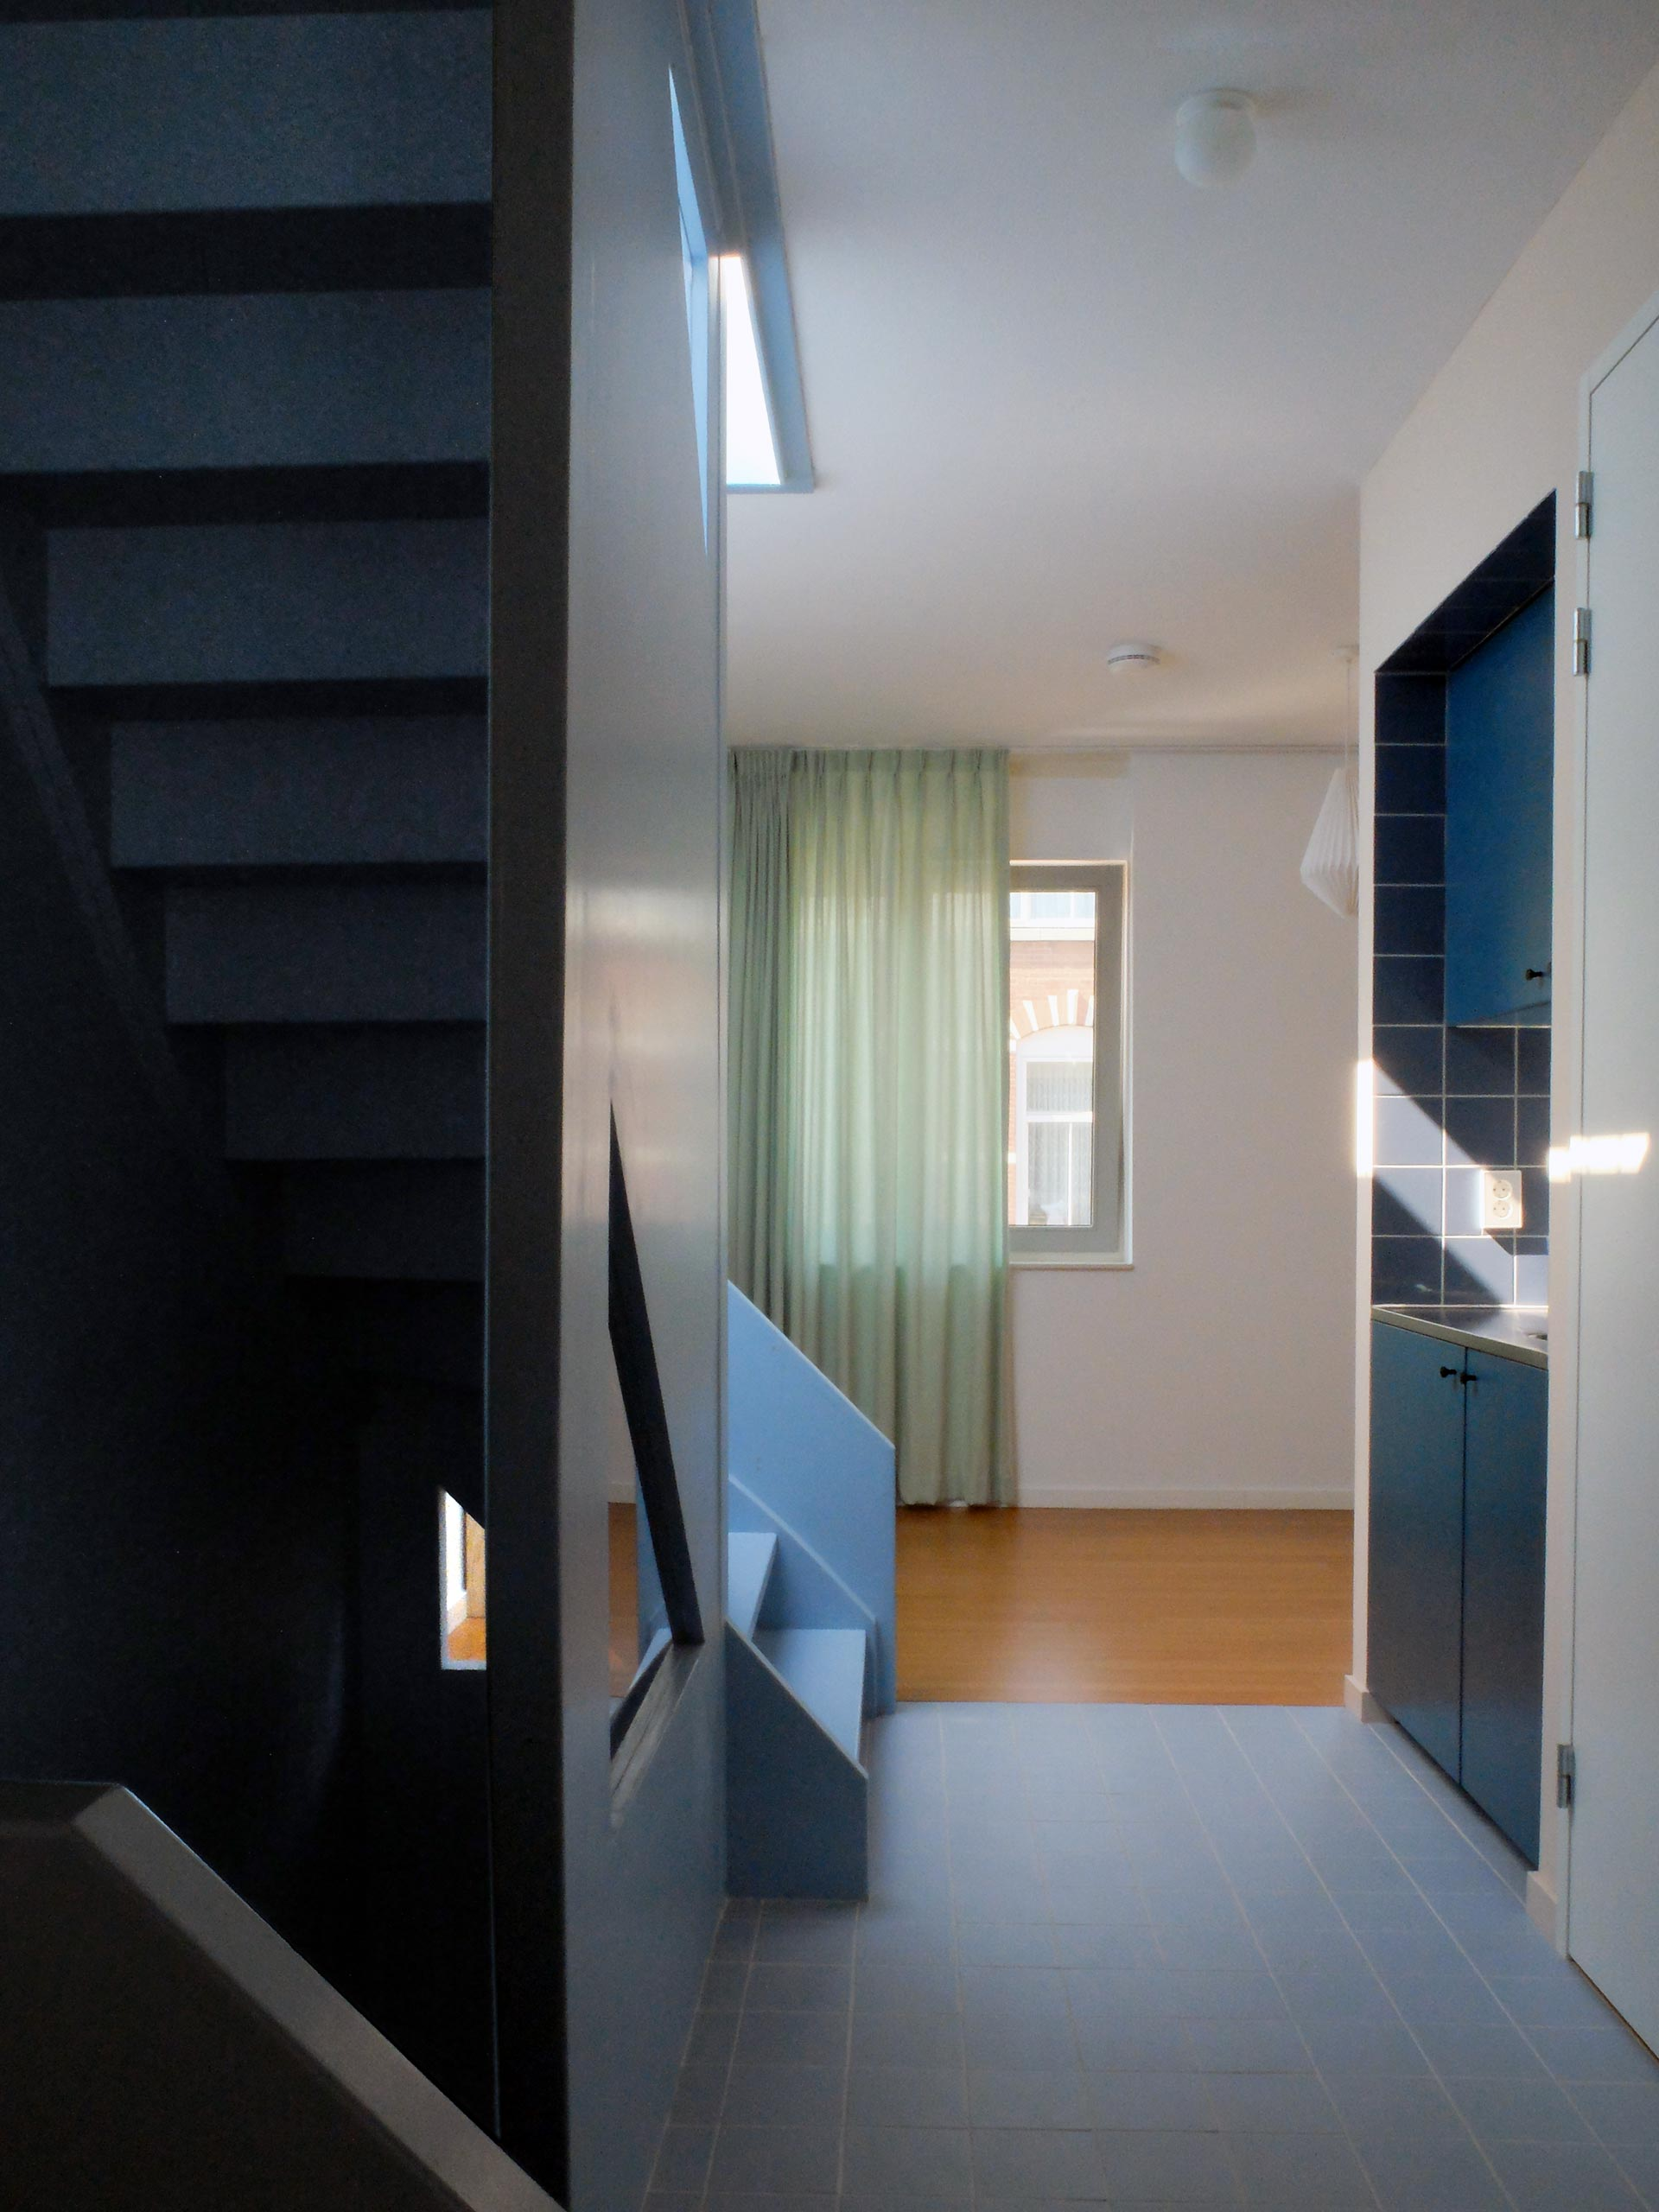 Lagado-architects-workhome-noordereiland-interior-pantry-blue-stair